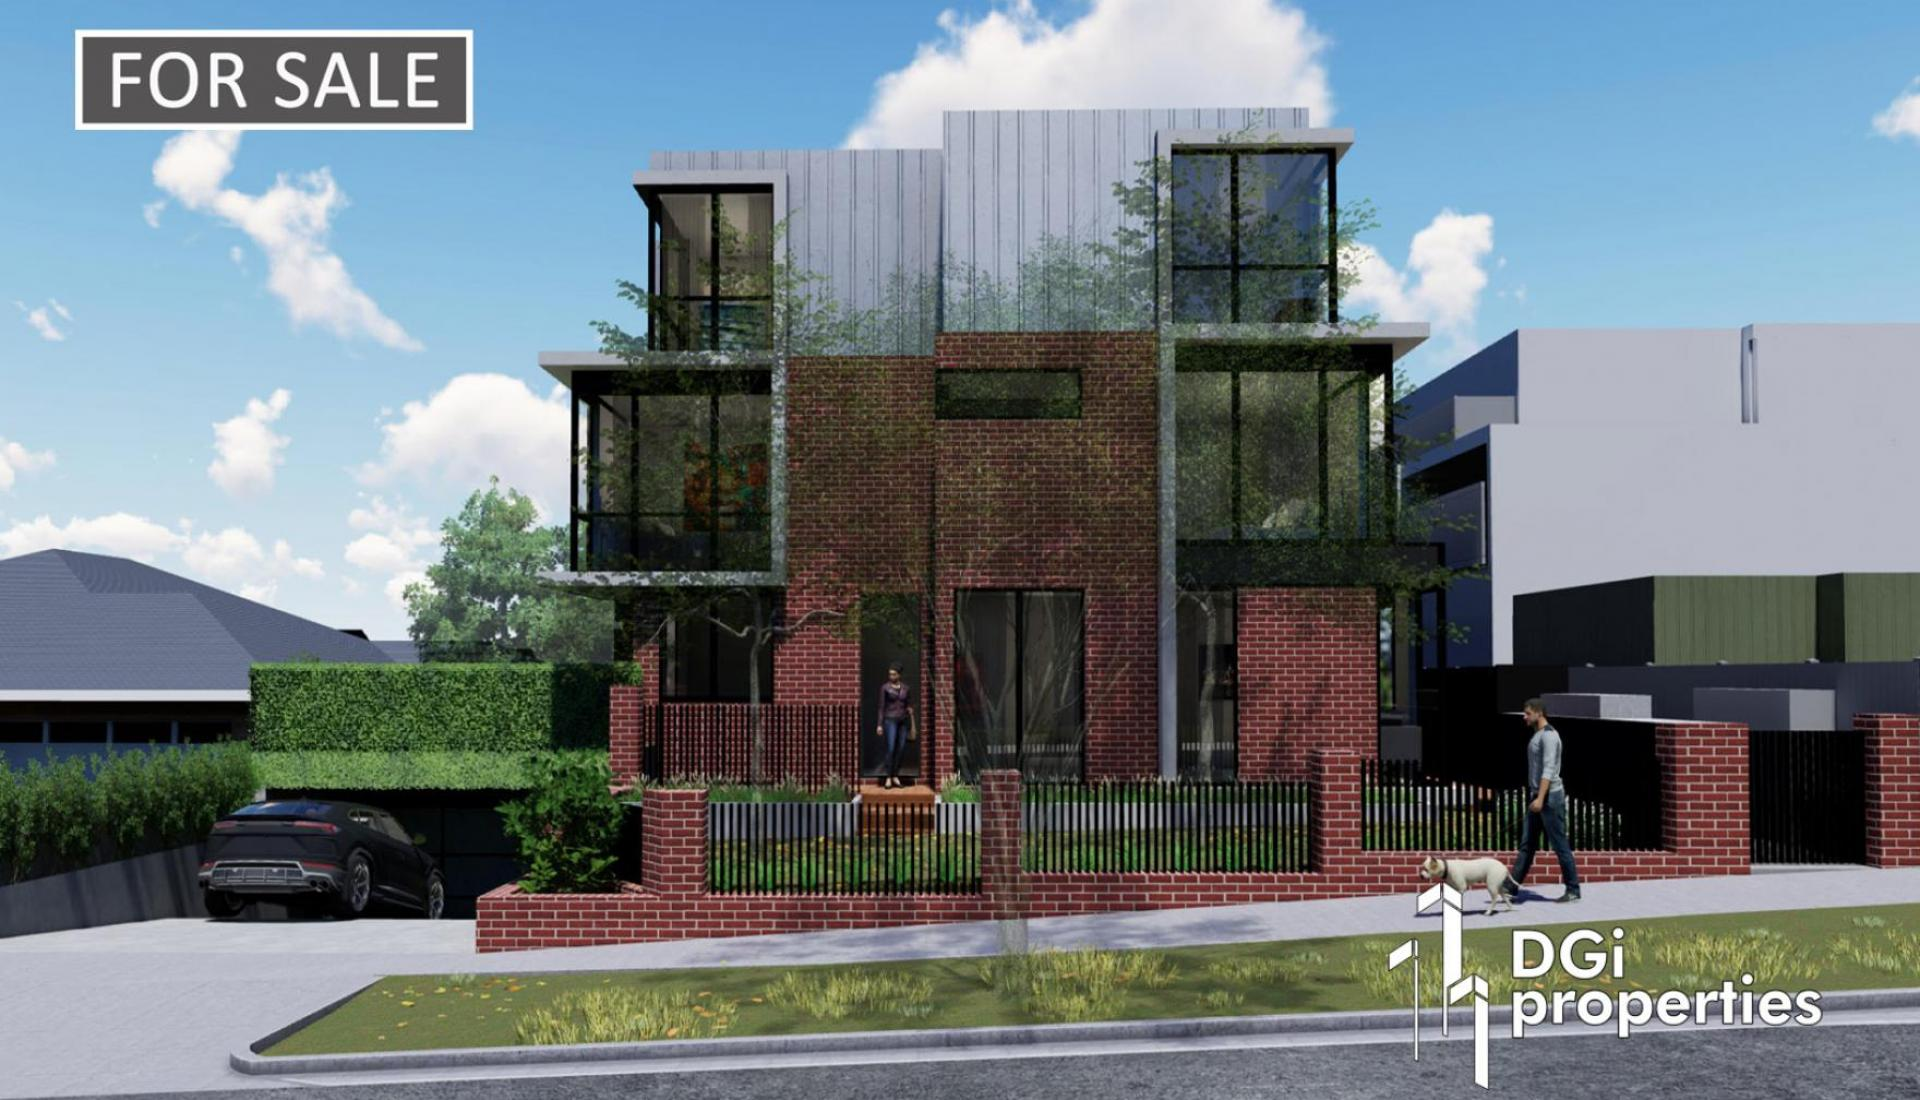 PLANS & PERMIT FOR 7 IVANHOE TOWNHOUSES